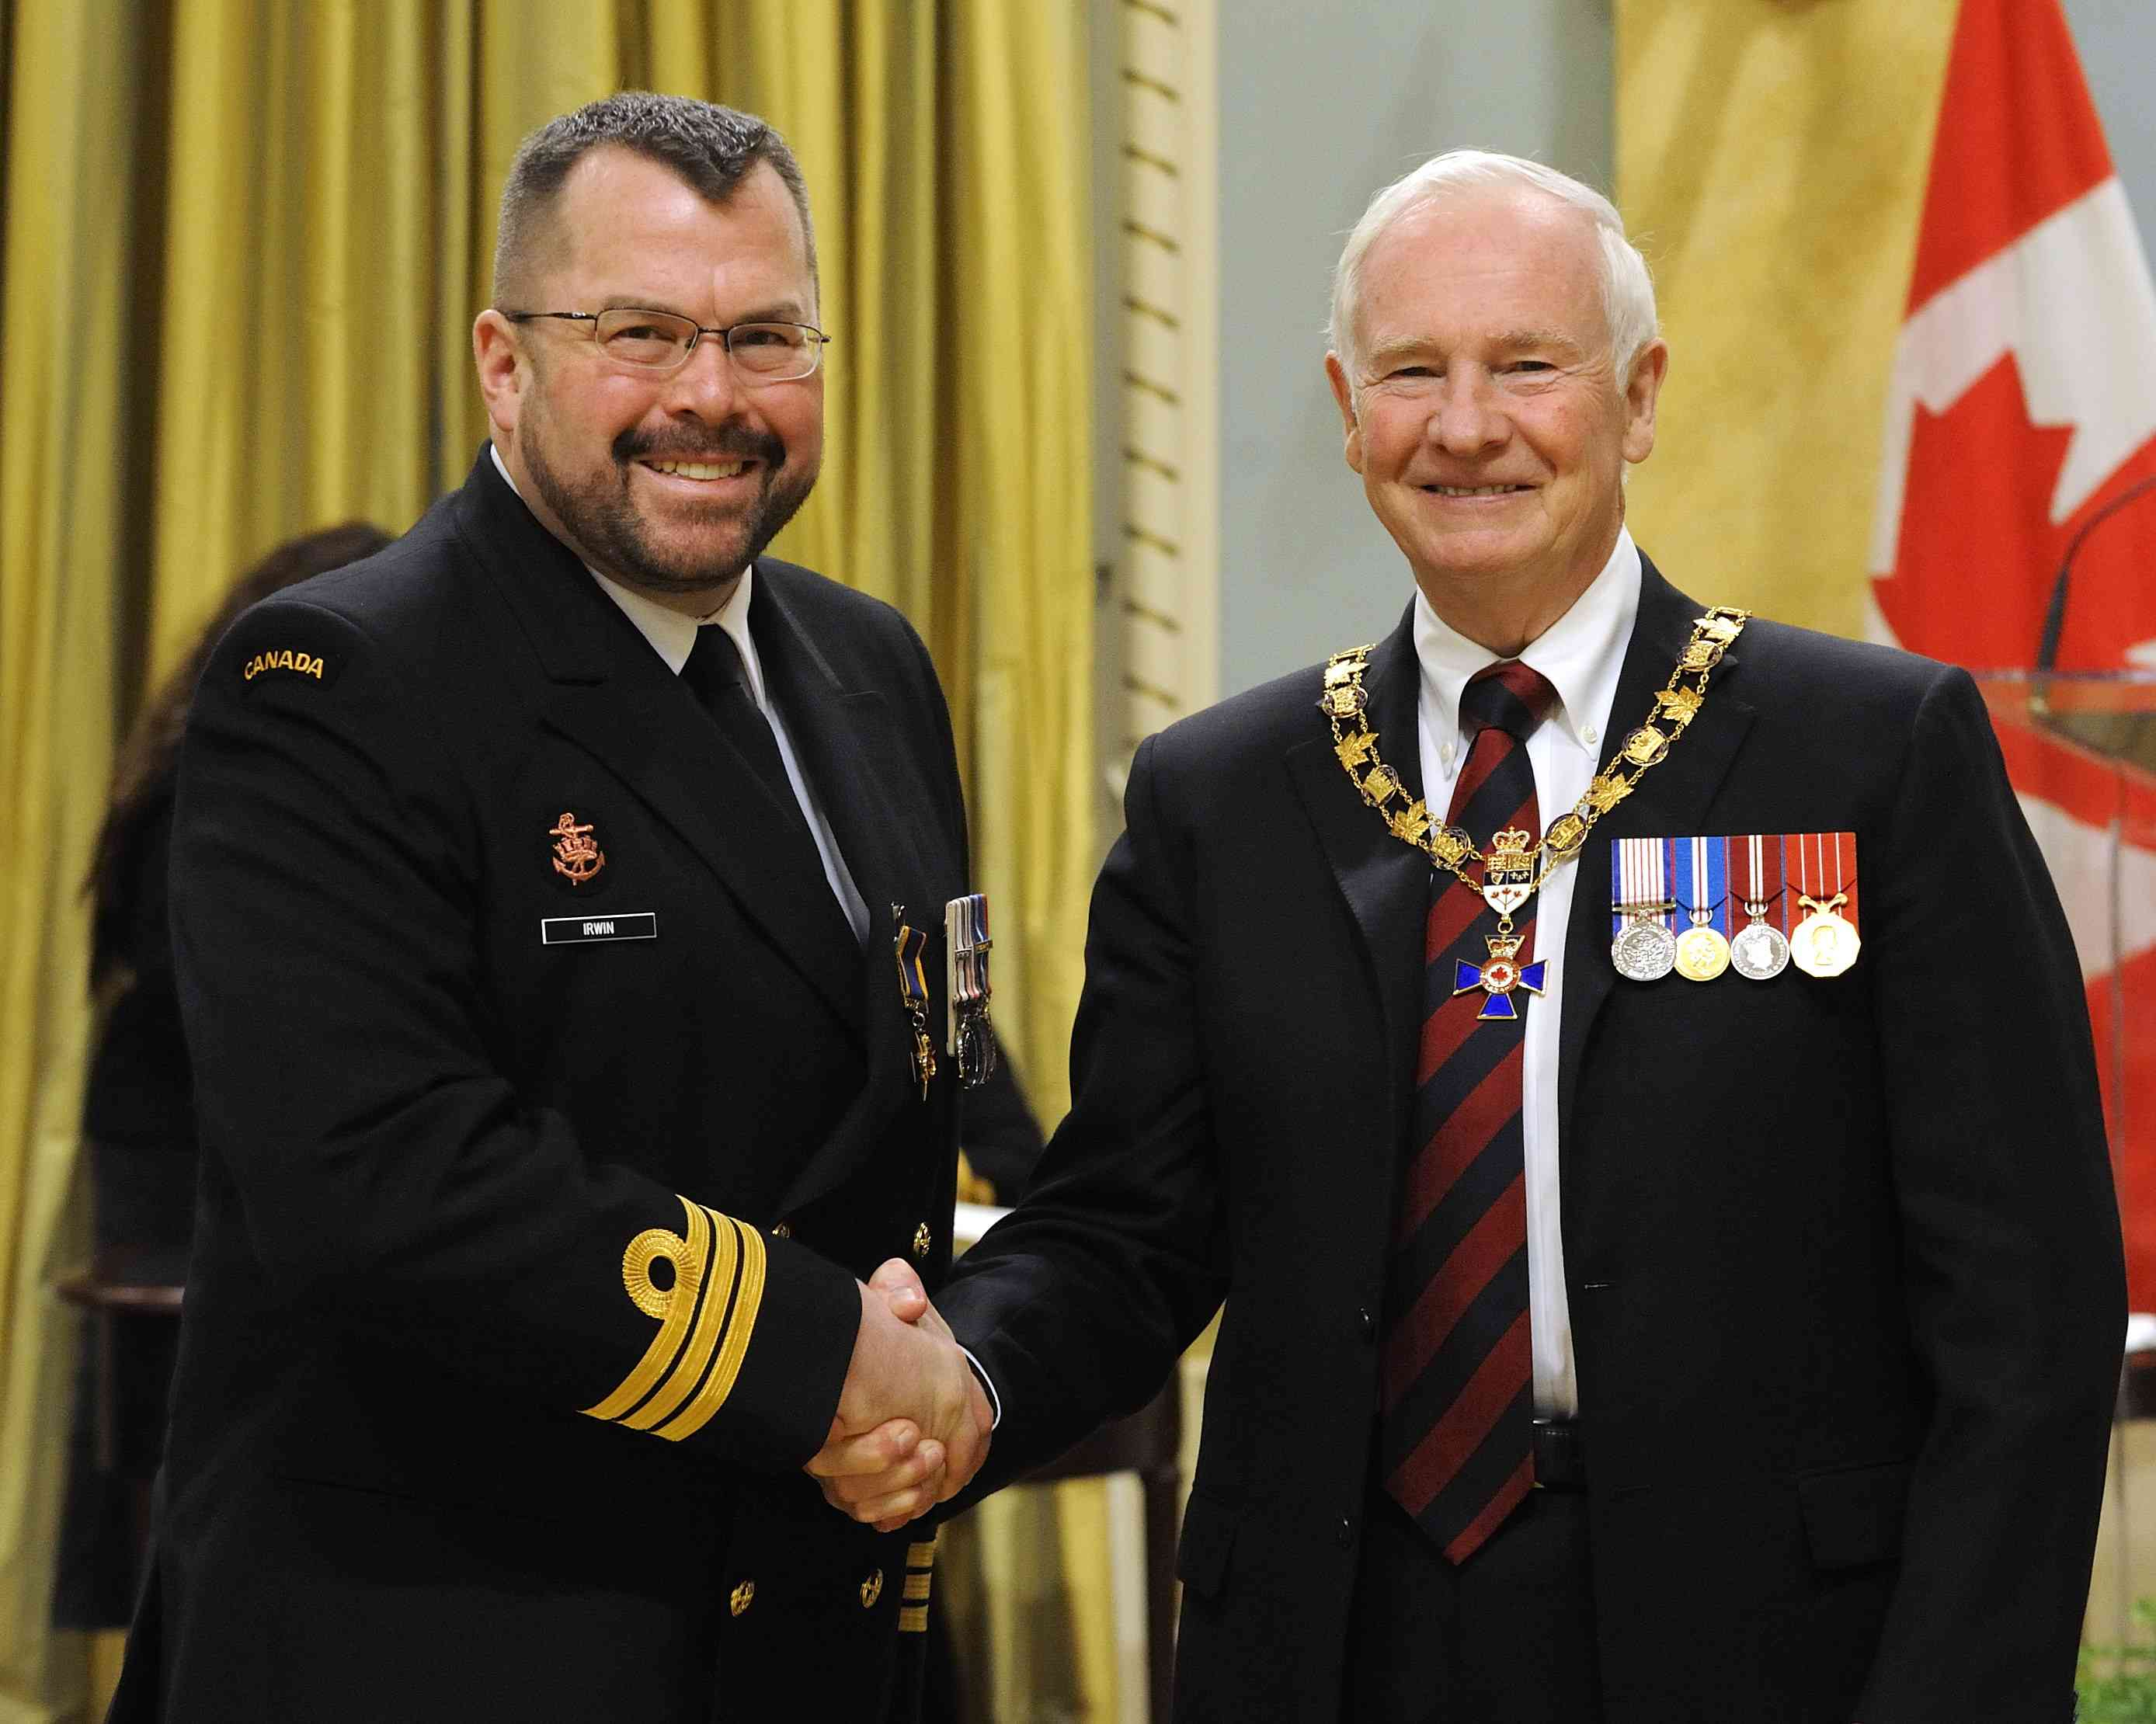 His Excellency presented the Order of Military Merit at the Officer level (O.M.M.) to Commander Stephen Irwin, O.M.M., C.D., Maritime Forces Pacific Headquarters,